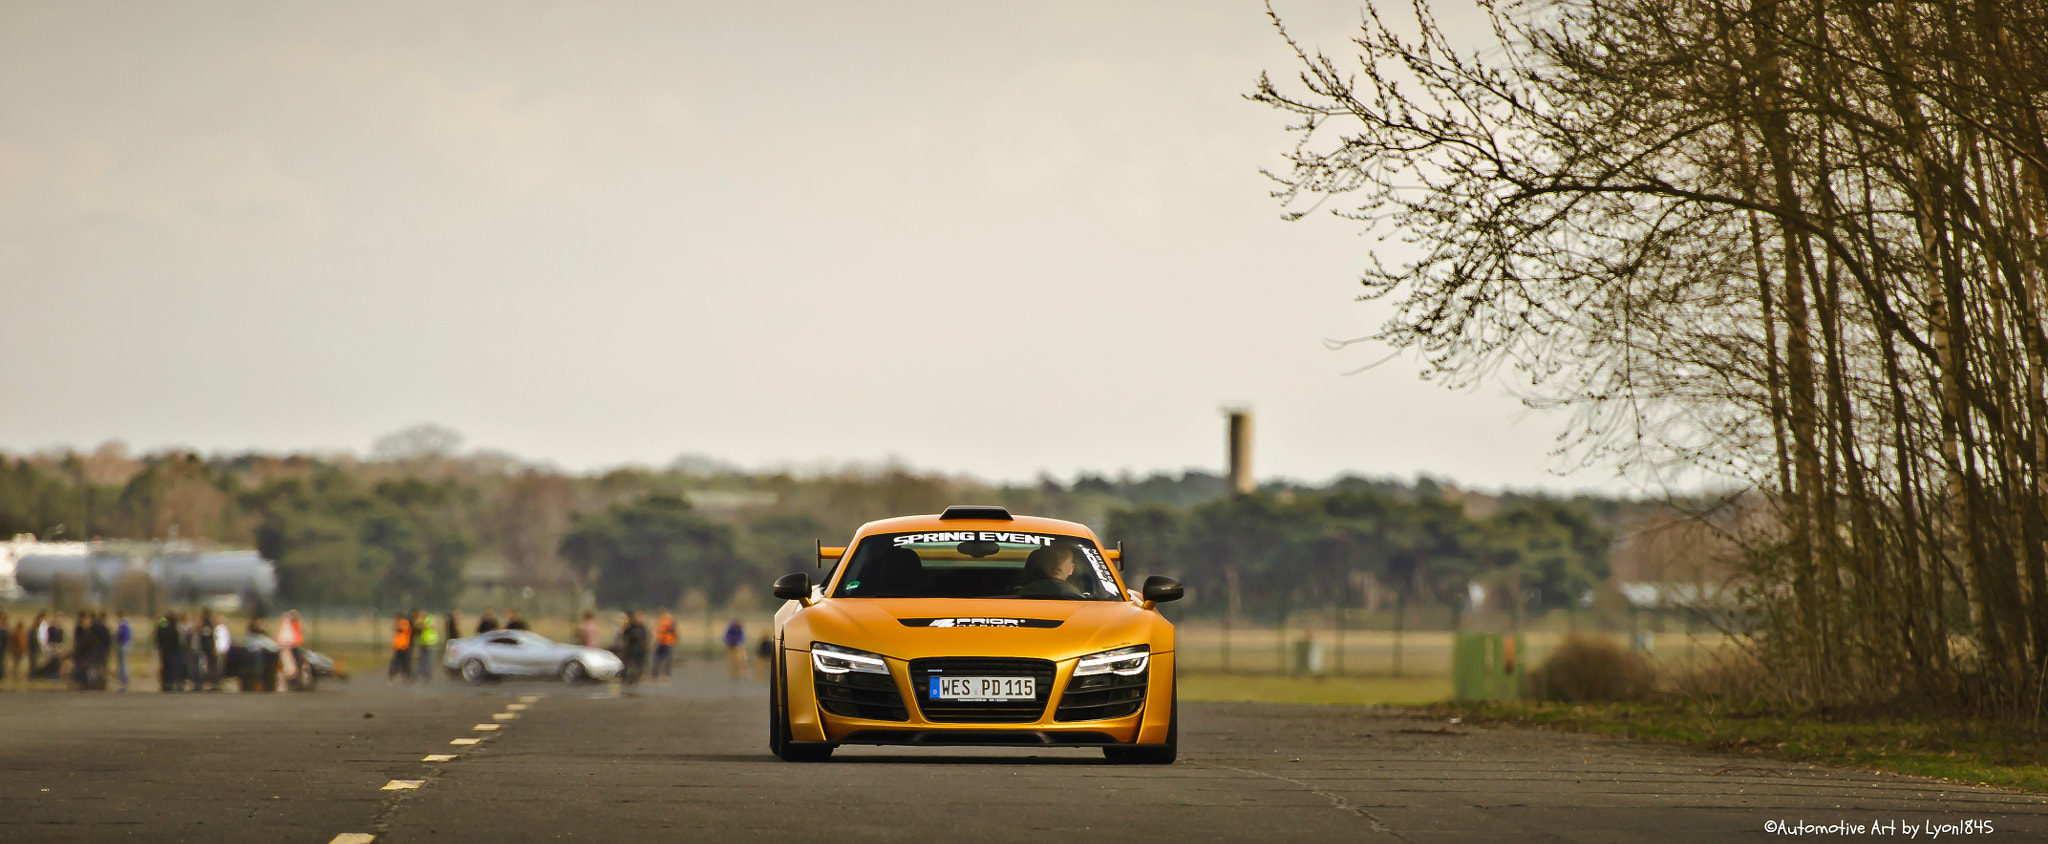 Photograph Audi R8 GT850 by Prior Design by lyon1845 on 500px